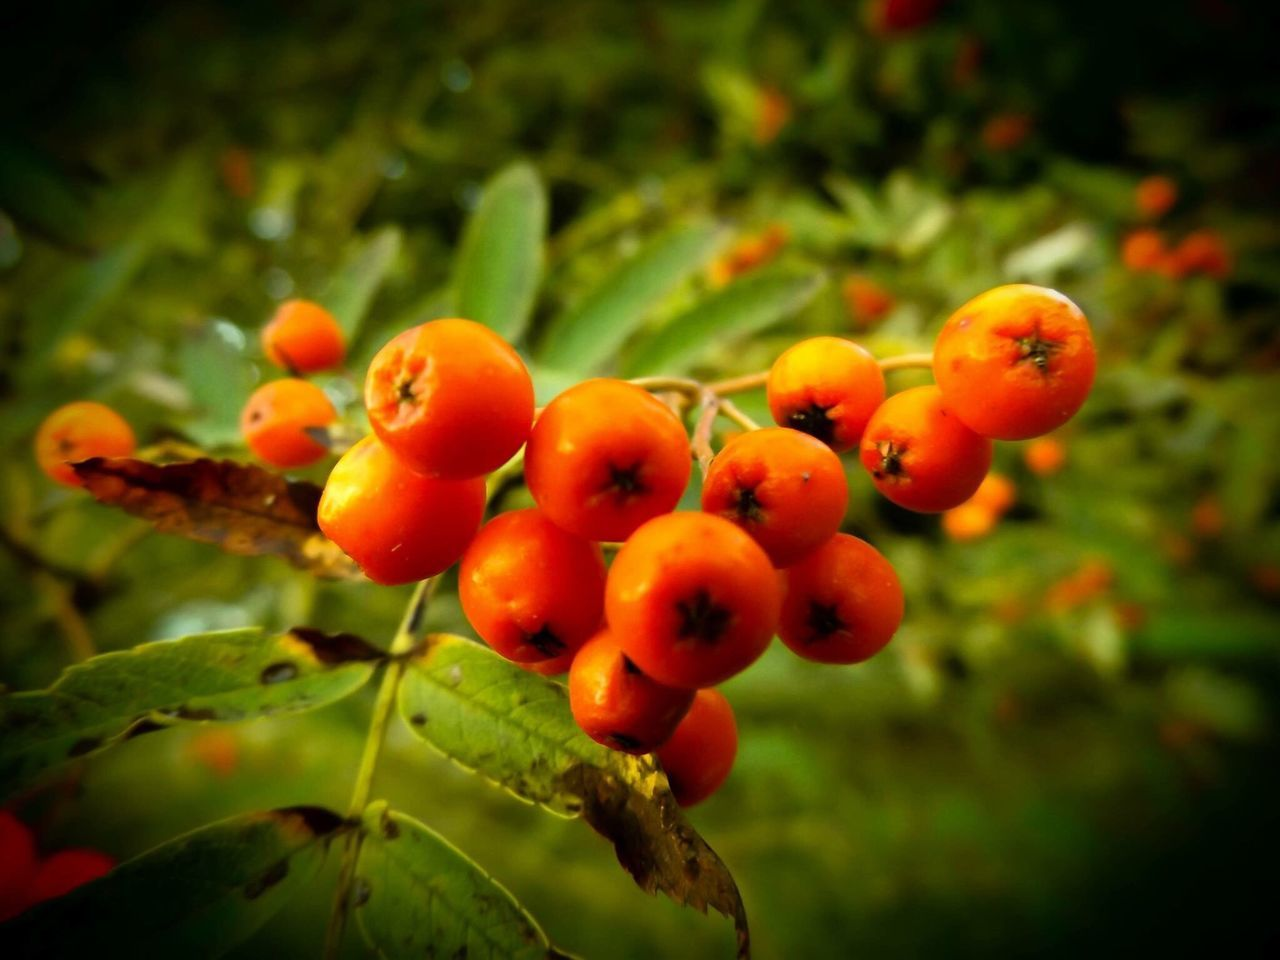 Berry time. Growth Fruit Food And Drink Focus On Foreground Nature Outdoors Growing Tree Freshness Day No People Food Close-up Plant Leaf Healthy Eating Beauty In Nature